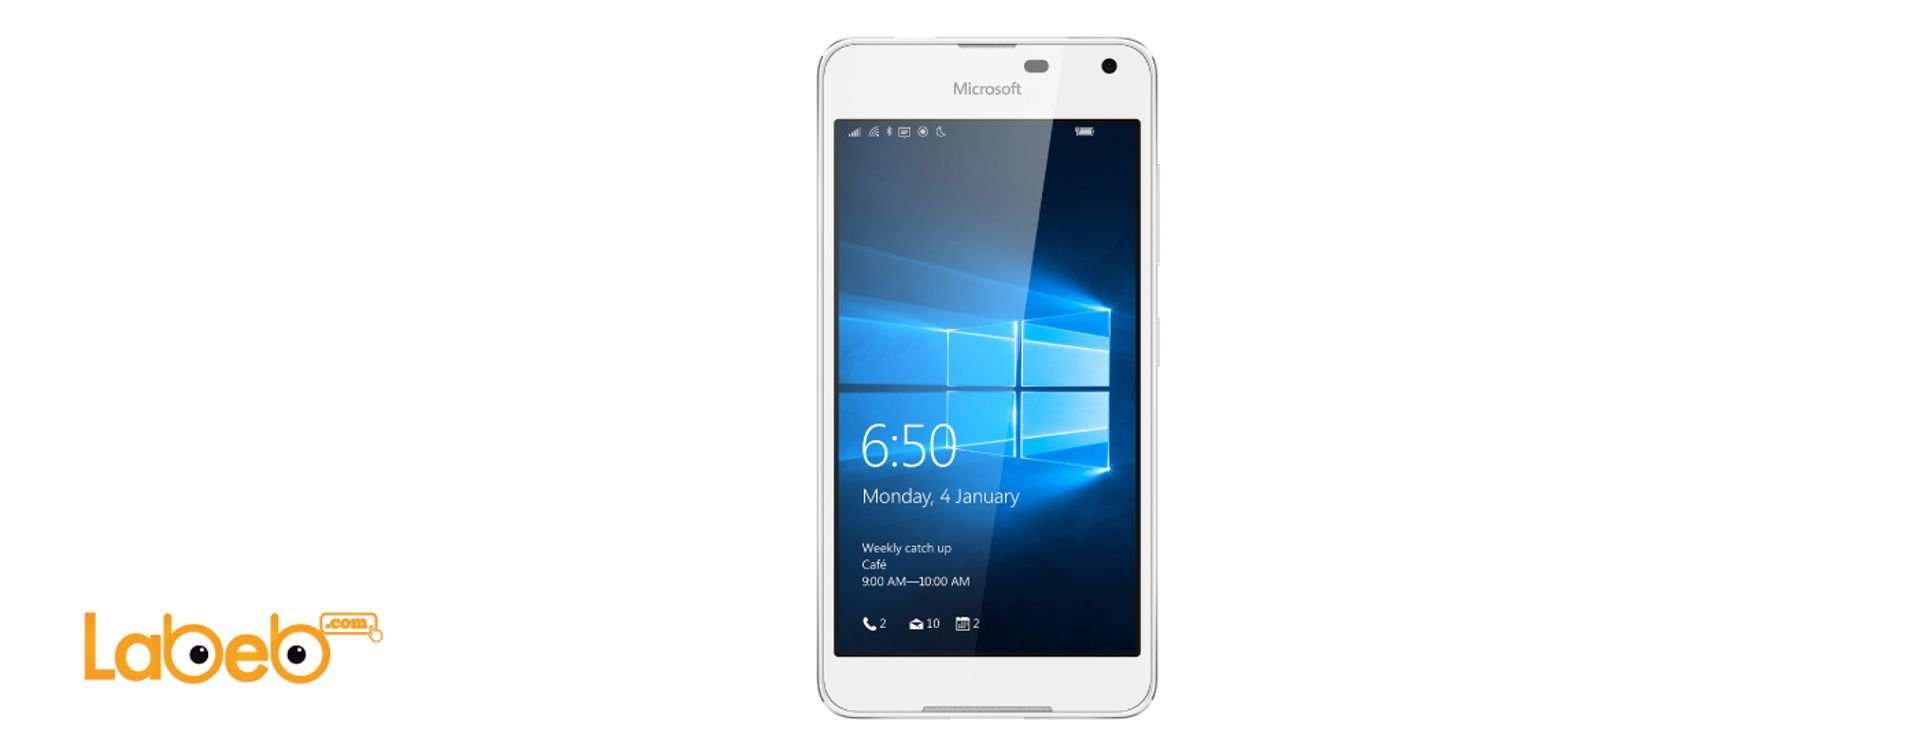 Microsoft Lumia 650 with specifications directed to the business sector